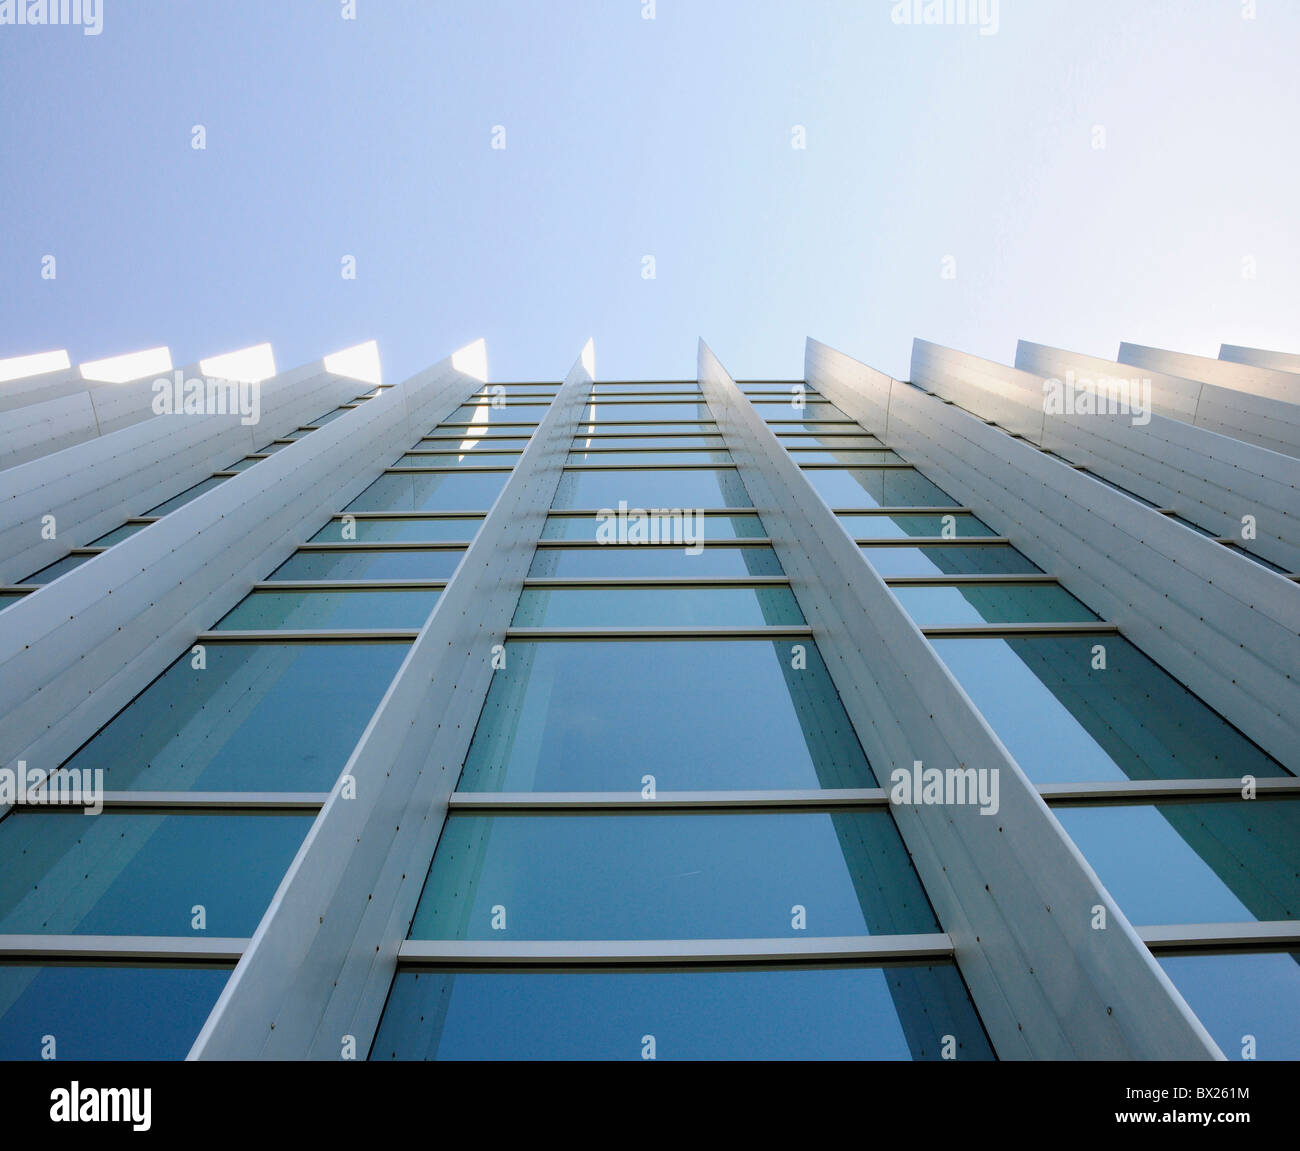 Exterior windows of a commercial office building looking up from the ground with blue sky reflected in windows - Stock Image